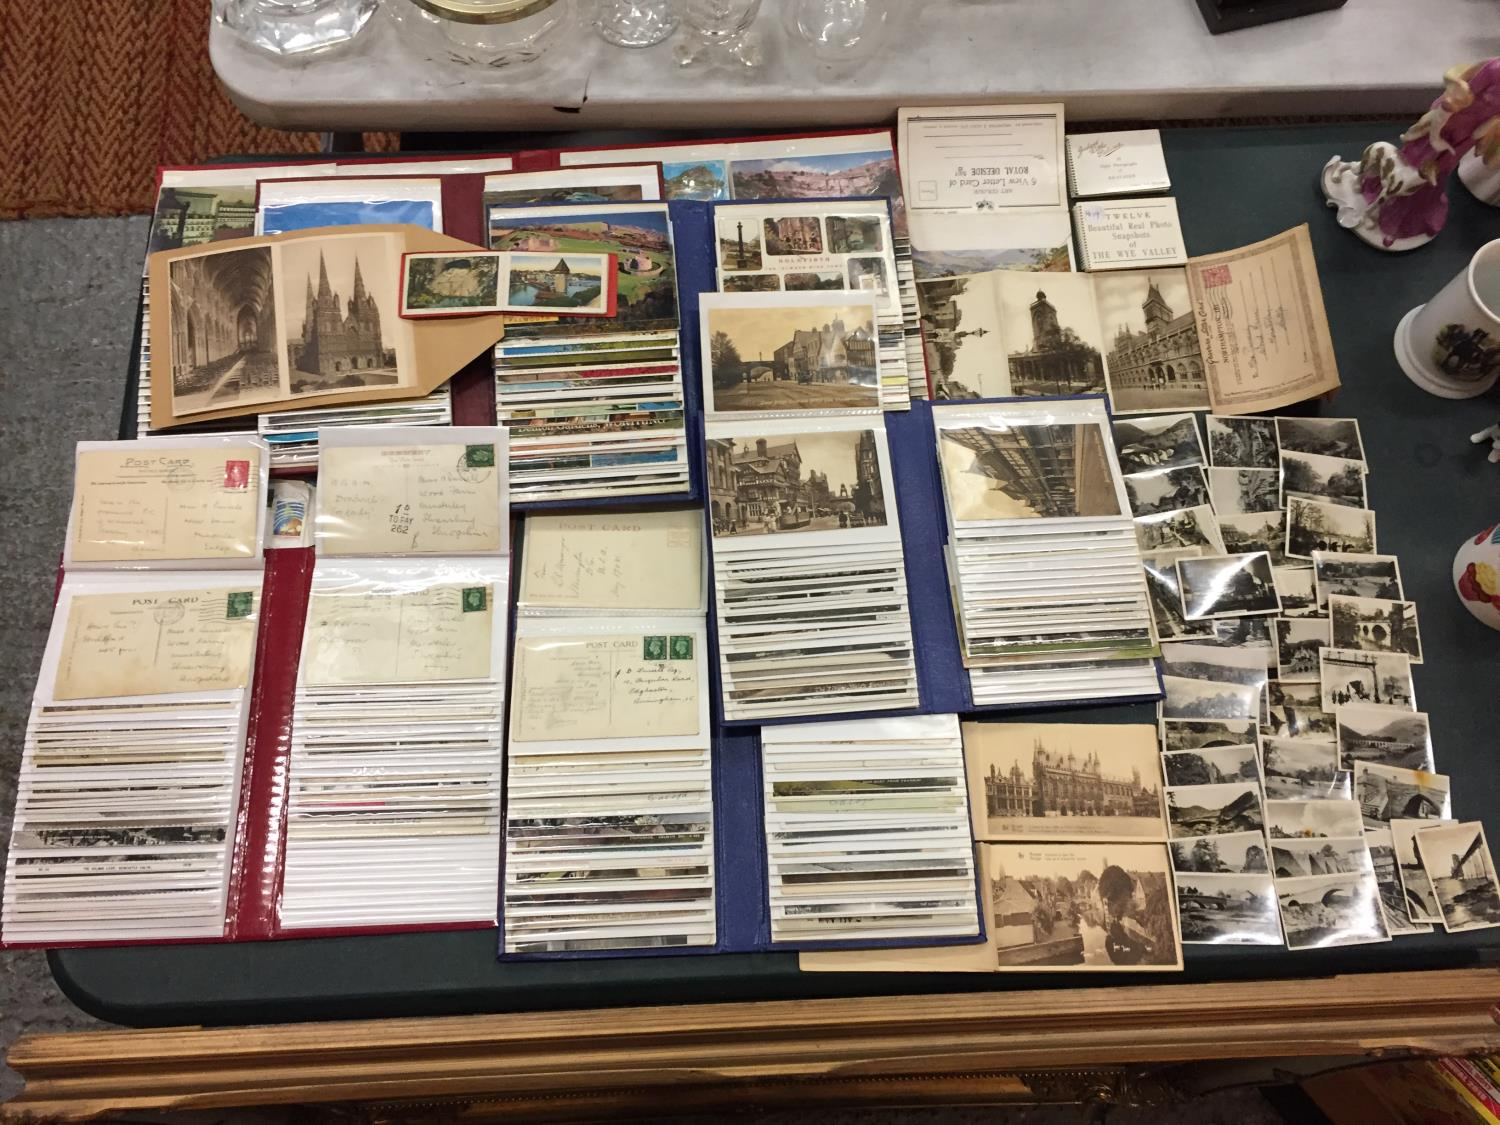 A LARGE COLLECTION OF 550+ ANTIQUE AND VINTAGE POSTCARDS RANGING FROM 1908-1970'S. MAINLEY UK - SOME